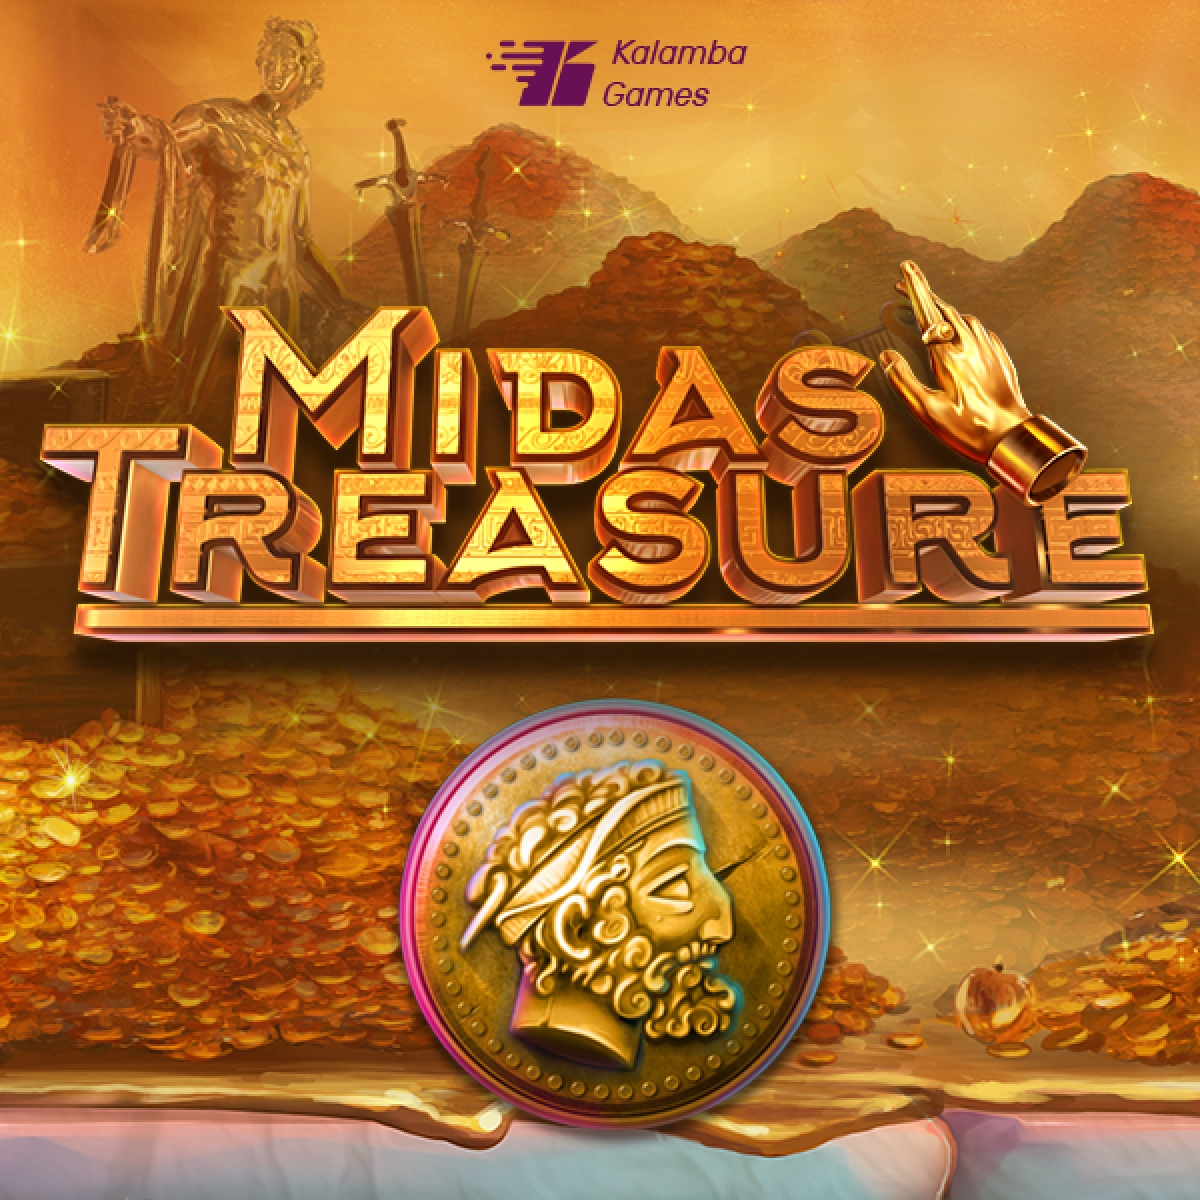 The Midas Treasure Online Slot Demo Game by Kalamba Games